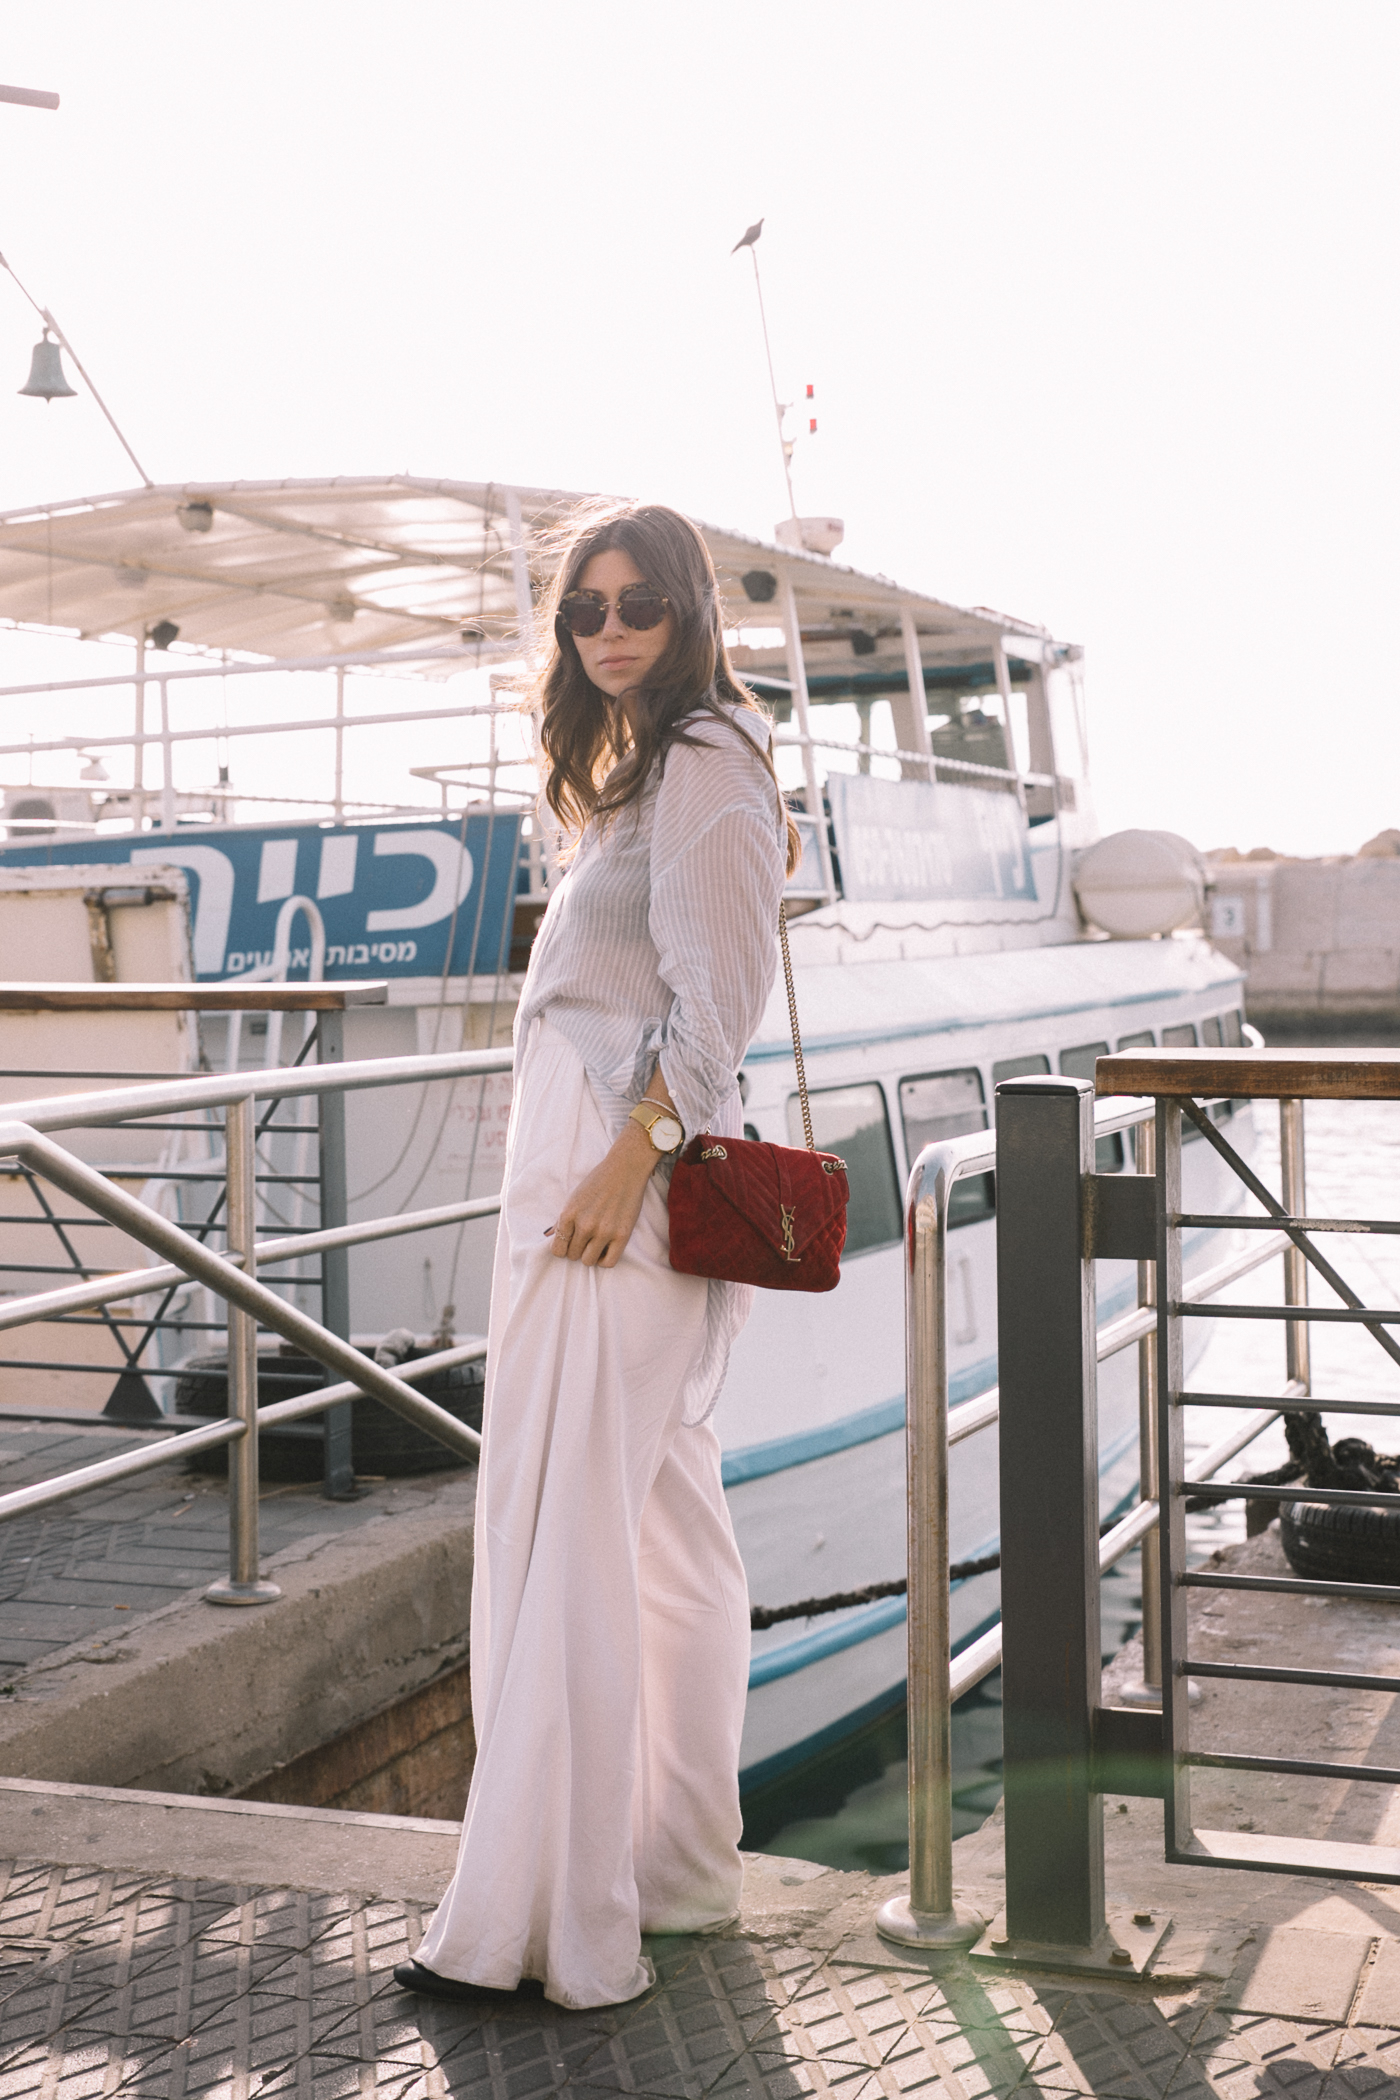 Nautical Style: White Palazzo Pants + Striped Blouse | Bikinis & Passports